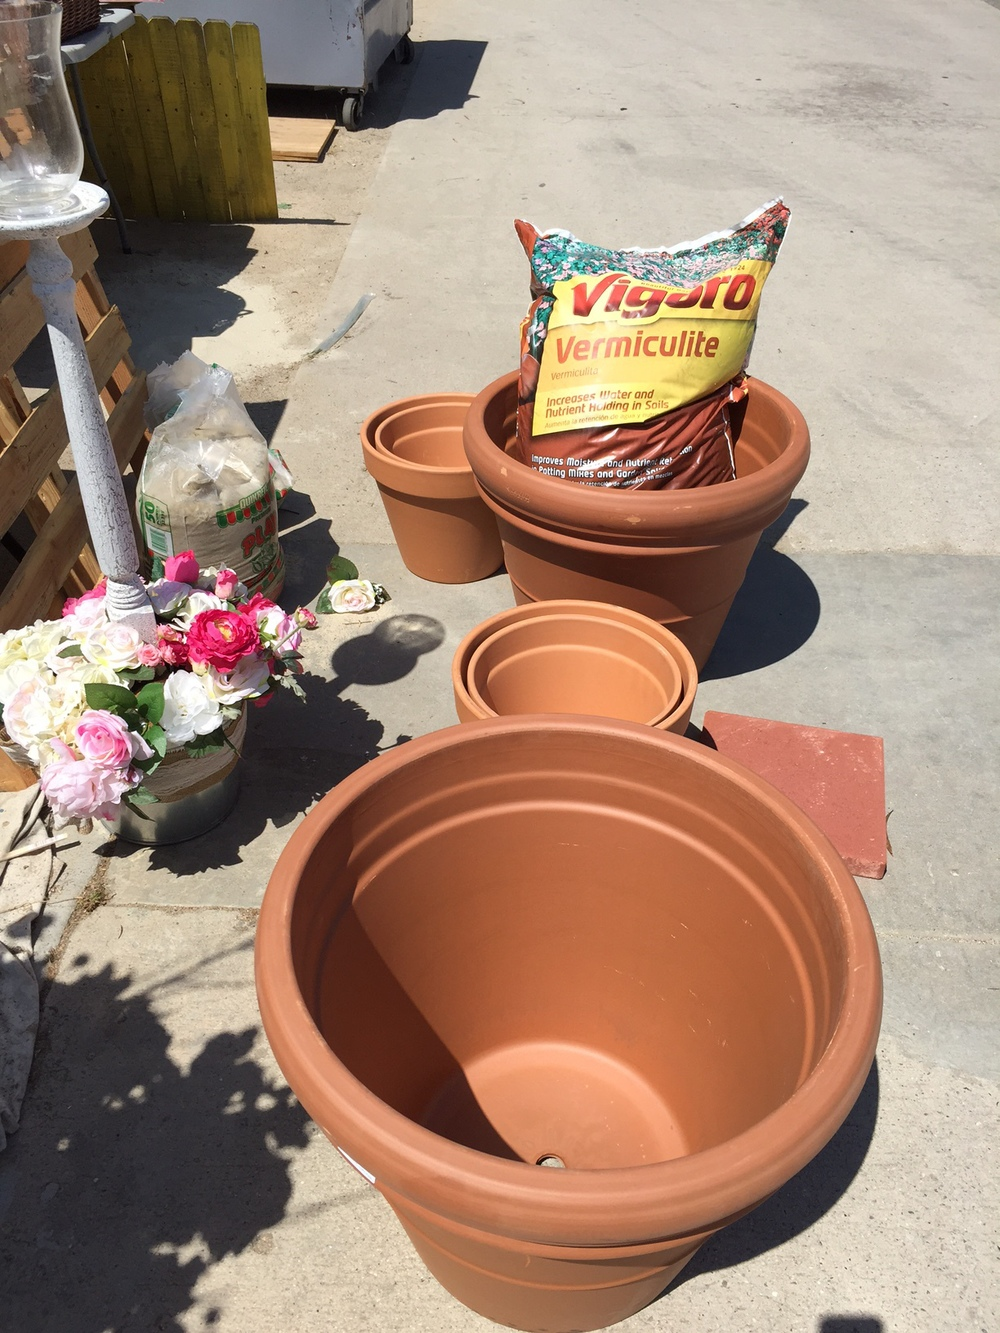 Supply list. Three nesting pots. Brick to raise the structure. Insulation (coarse vermiculite or lava rock). Terra Cotta Clay Pots (Nesting Sizes, A, B, C can be 24in x 22in, 13in x 12in and 12x10 or similar. Just make sure pots B & C can rest rim to rim within pot A)